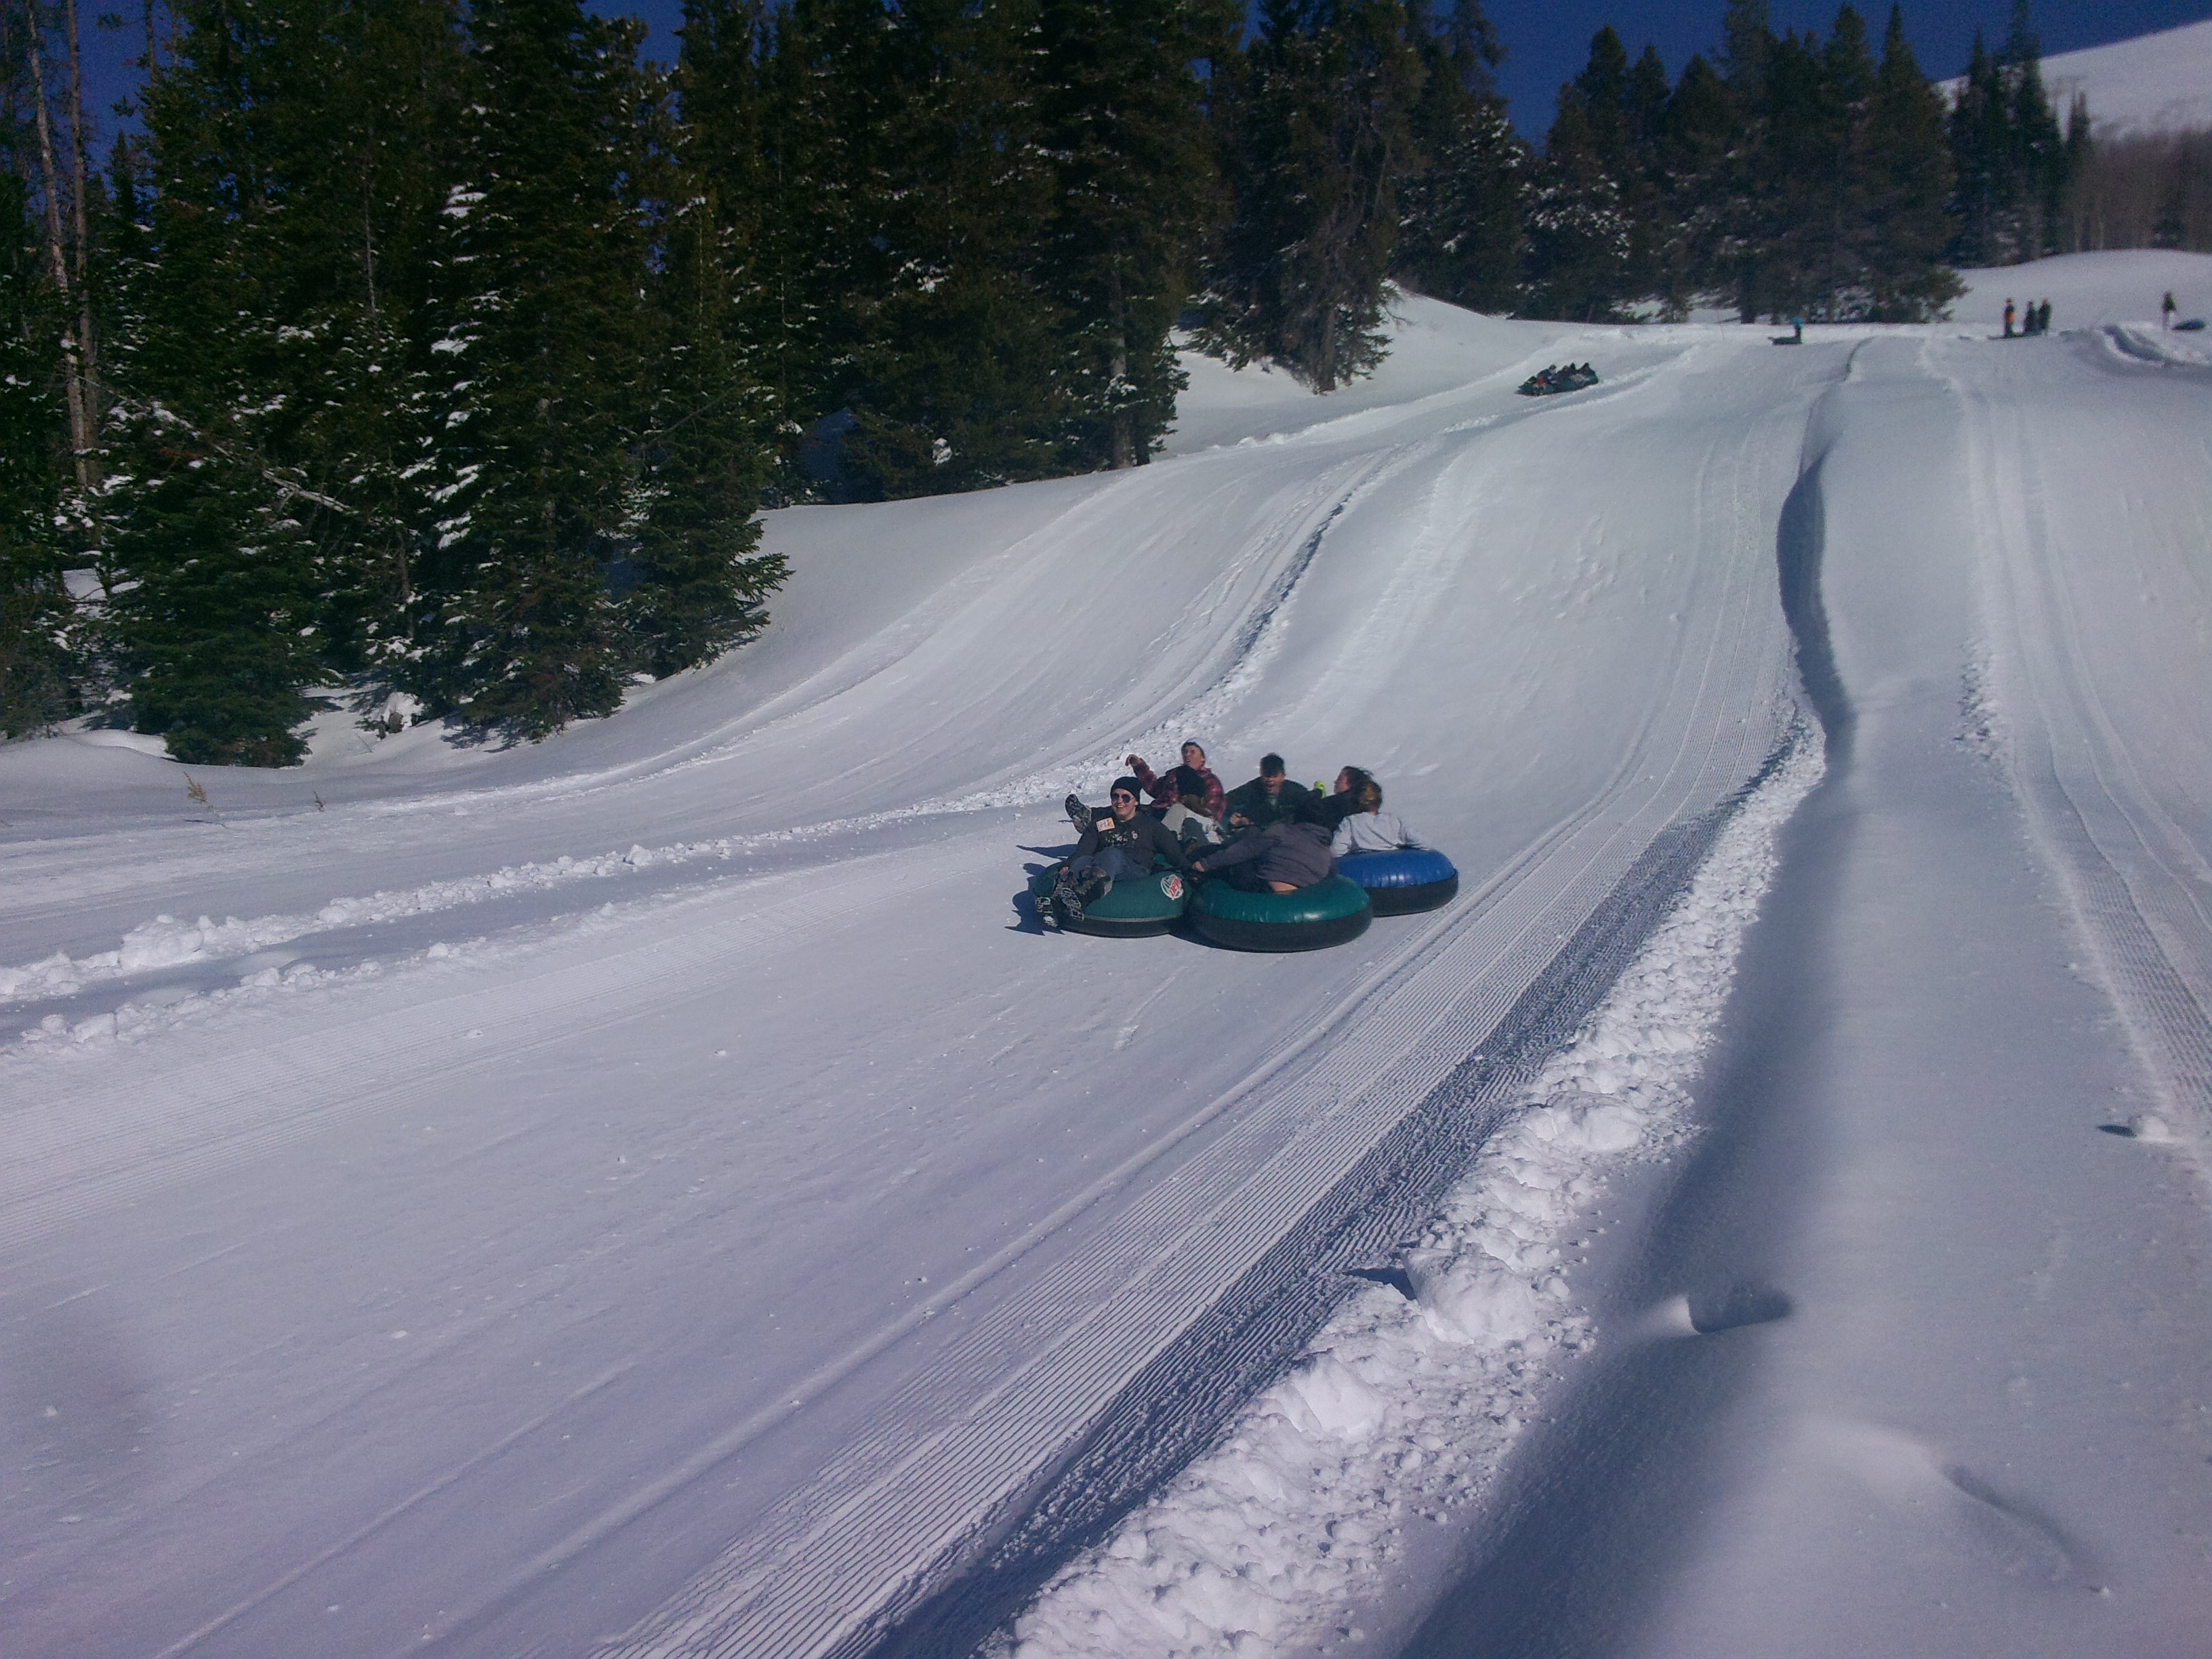 Tubing the Hill